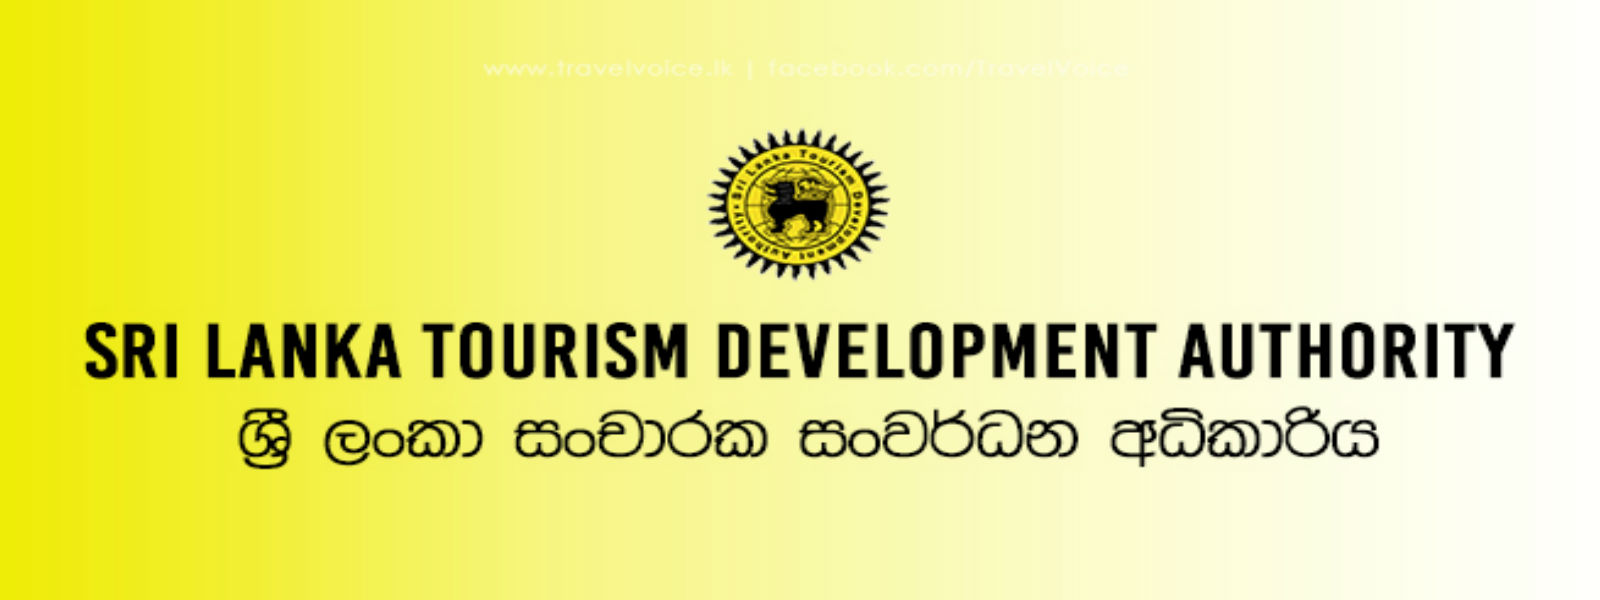 Tourism Authority to take stern action against resorts that discriminate between locals and foreigners